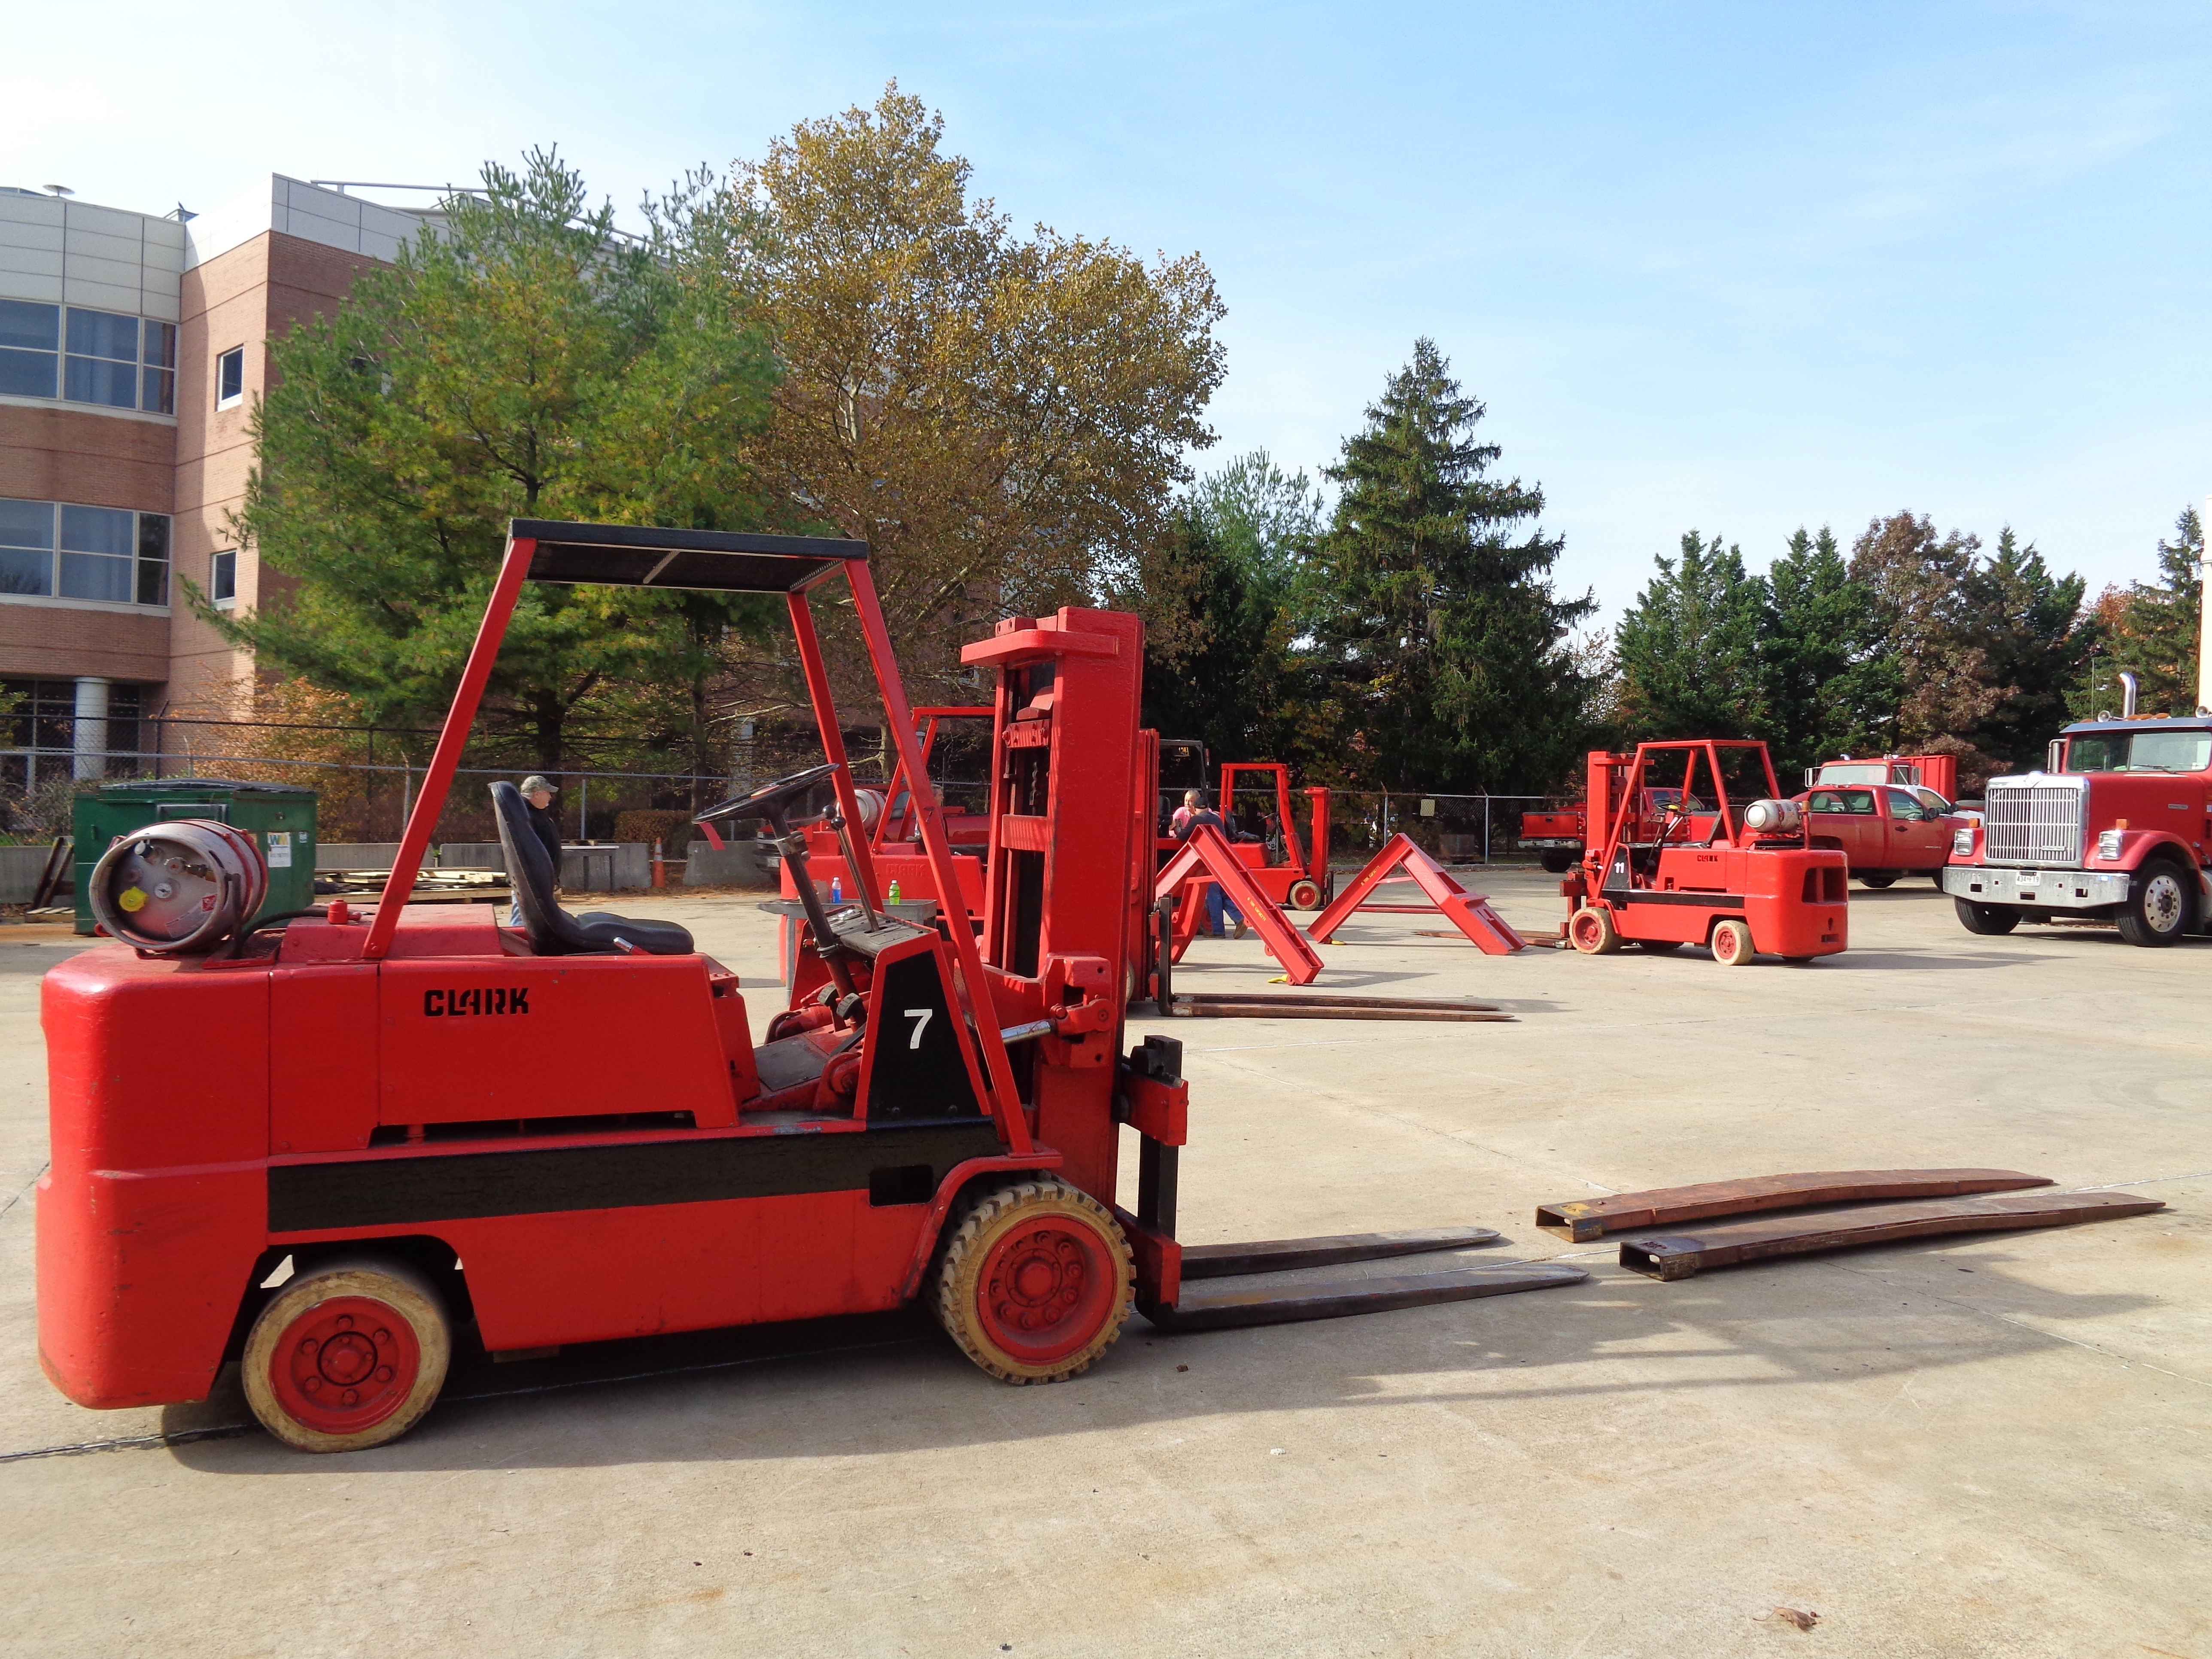 Clark C500-H120 Forklift- 12,000 lbs - Image 8 of 10